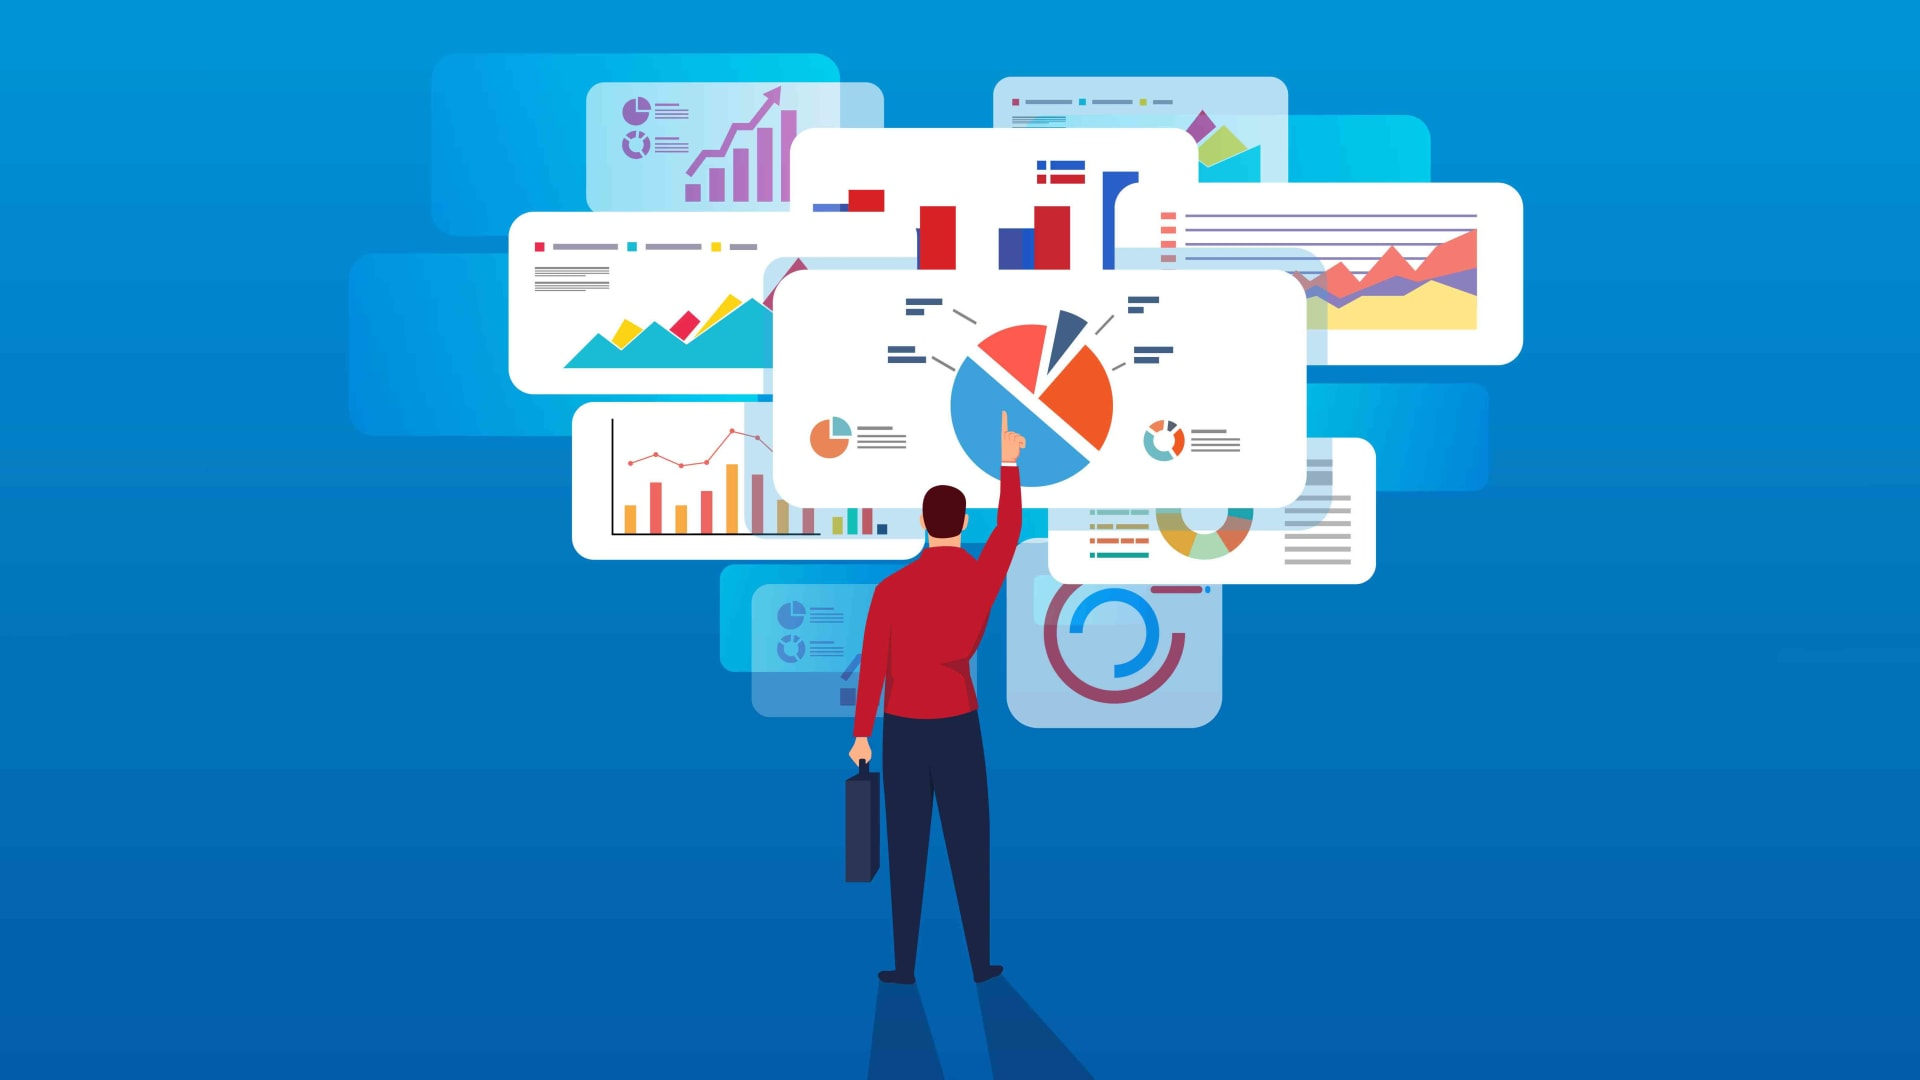 How to Find Metrics That Matter to Your Business